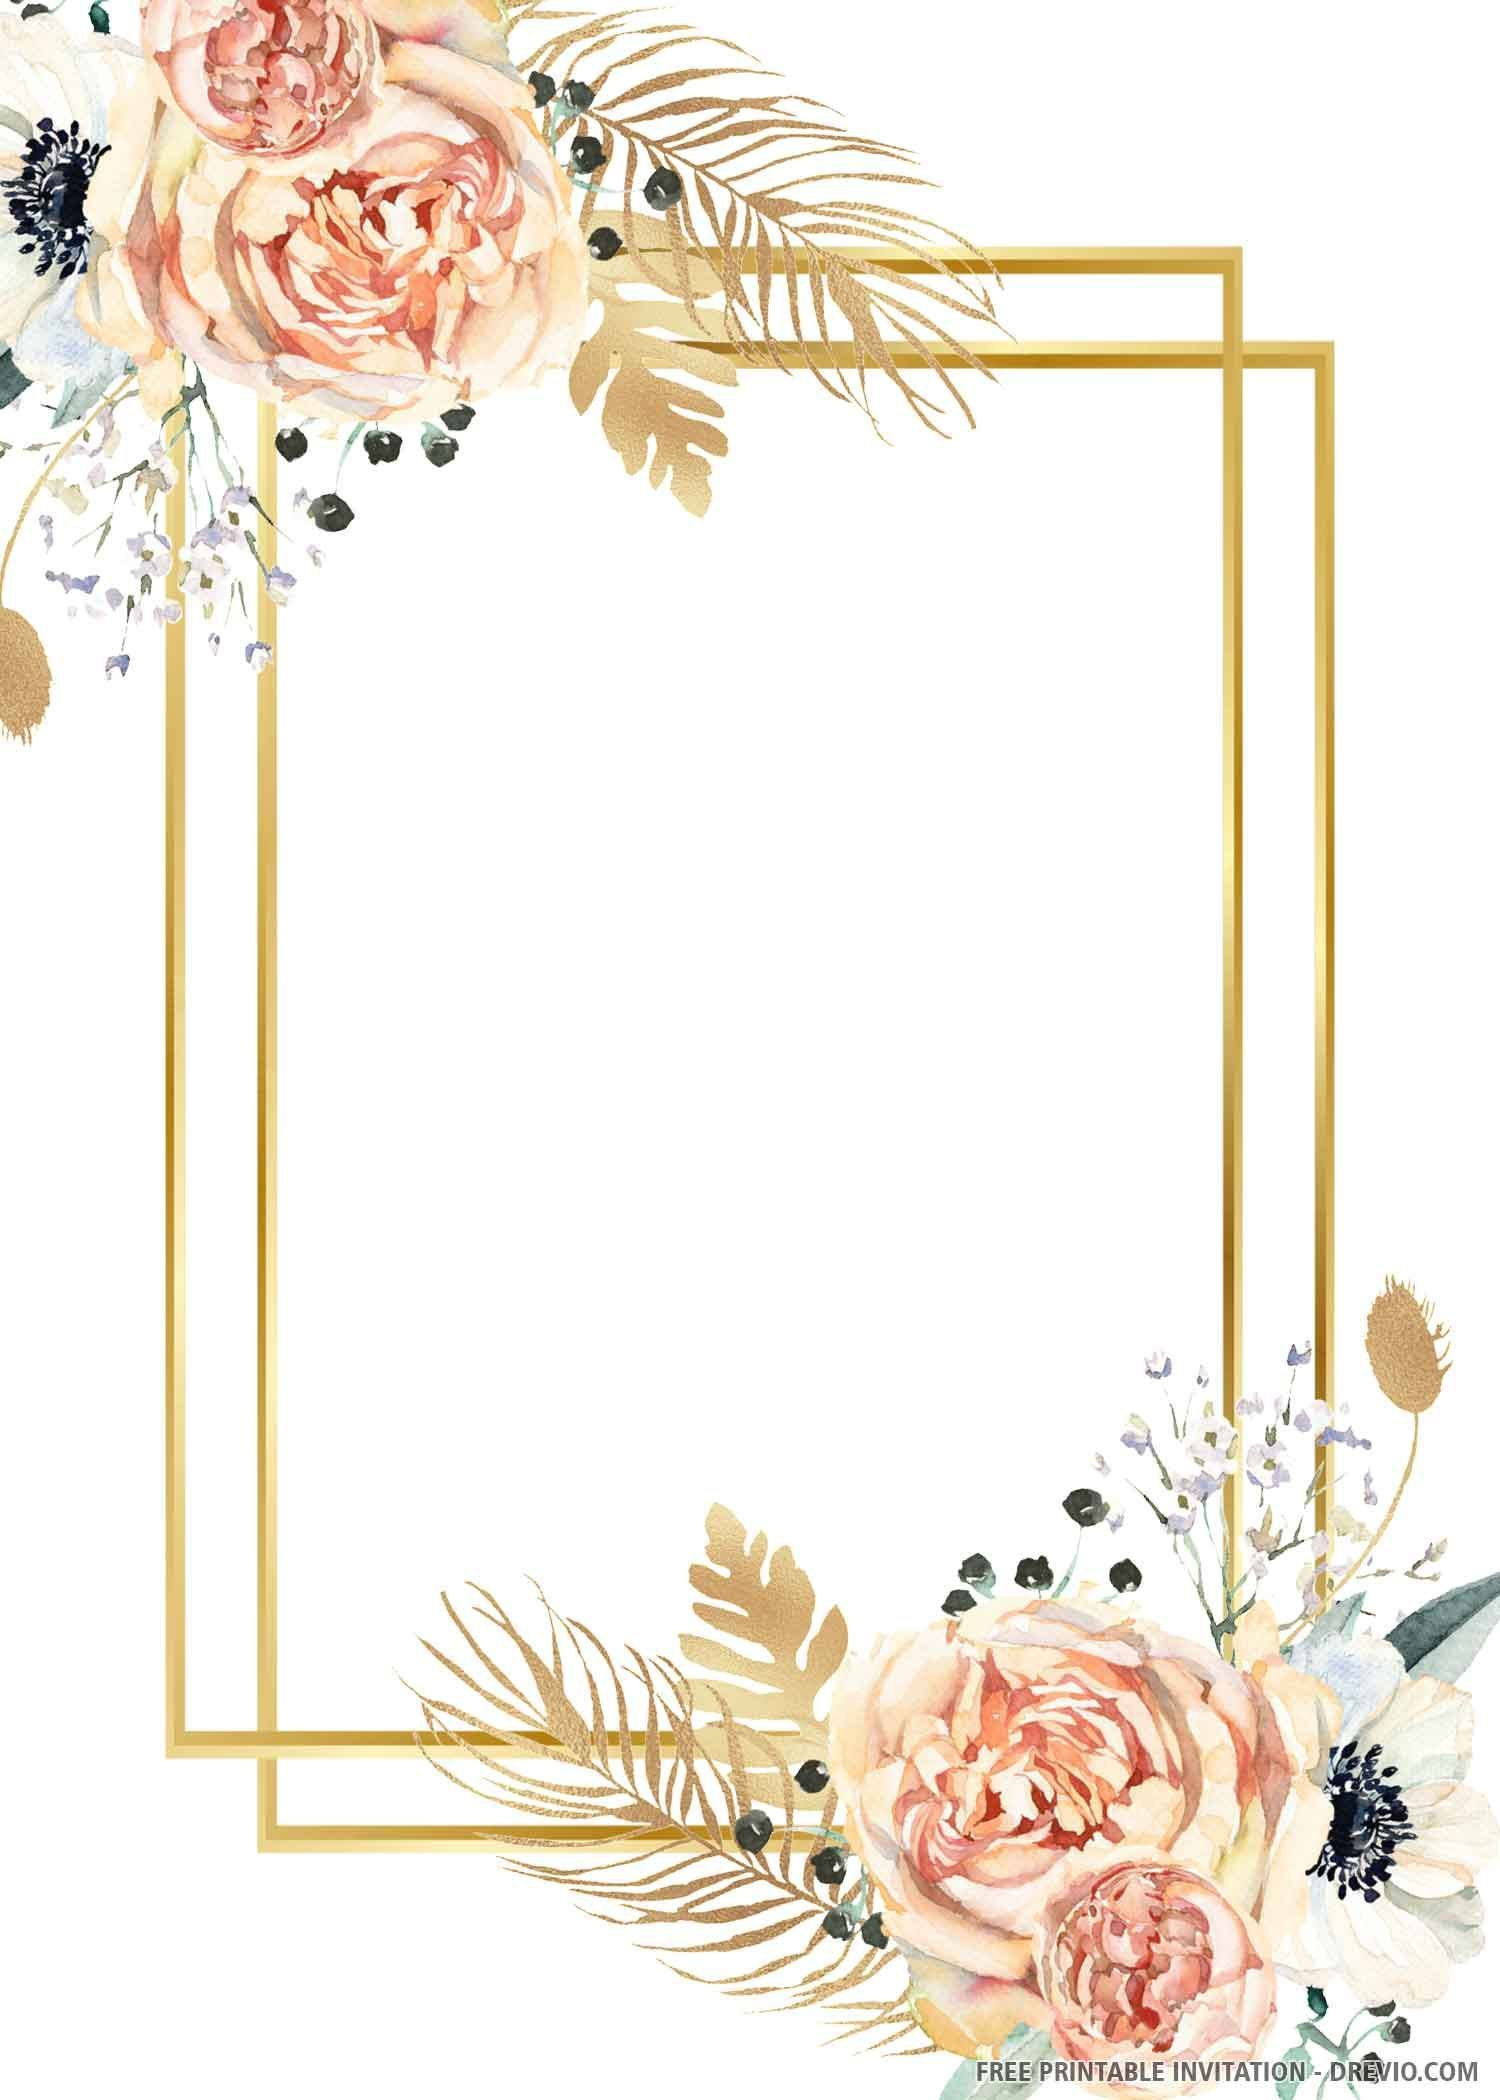 FREE PRINTABLE) Gold Wedding Invitation Template  Free wedding